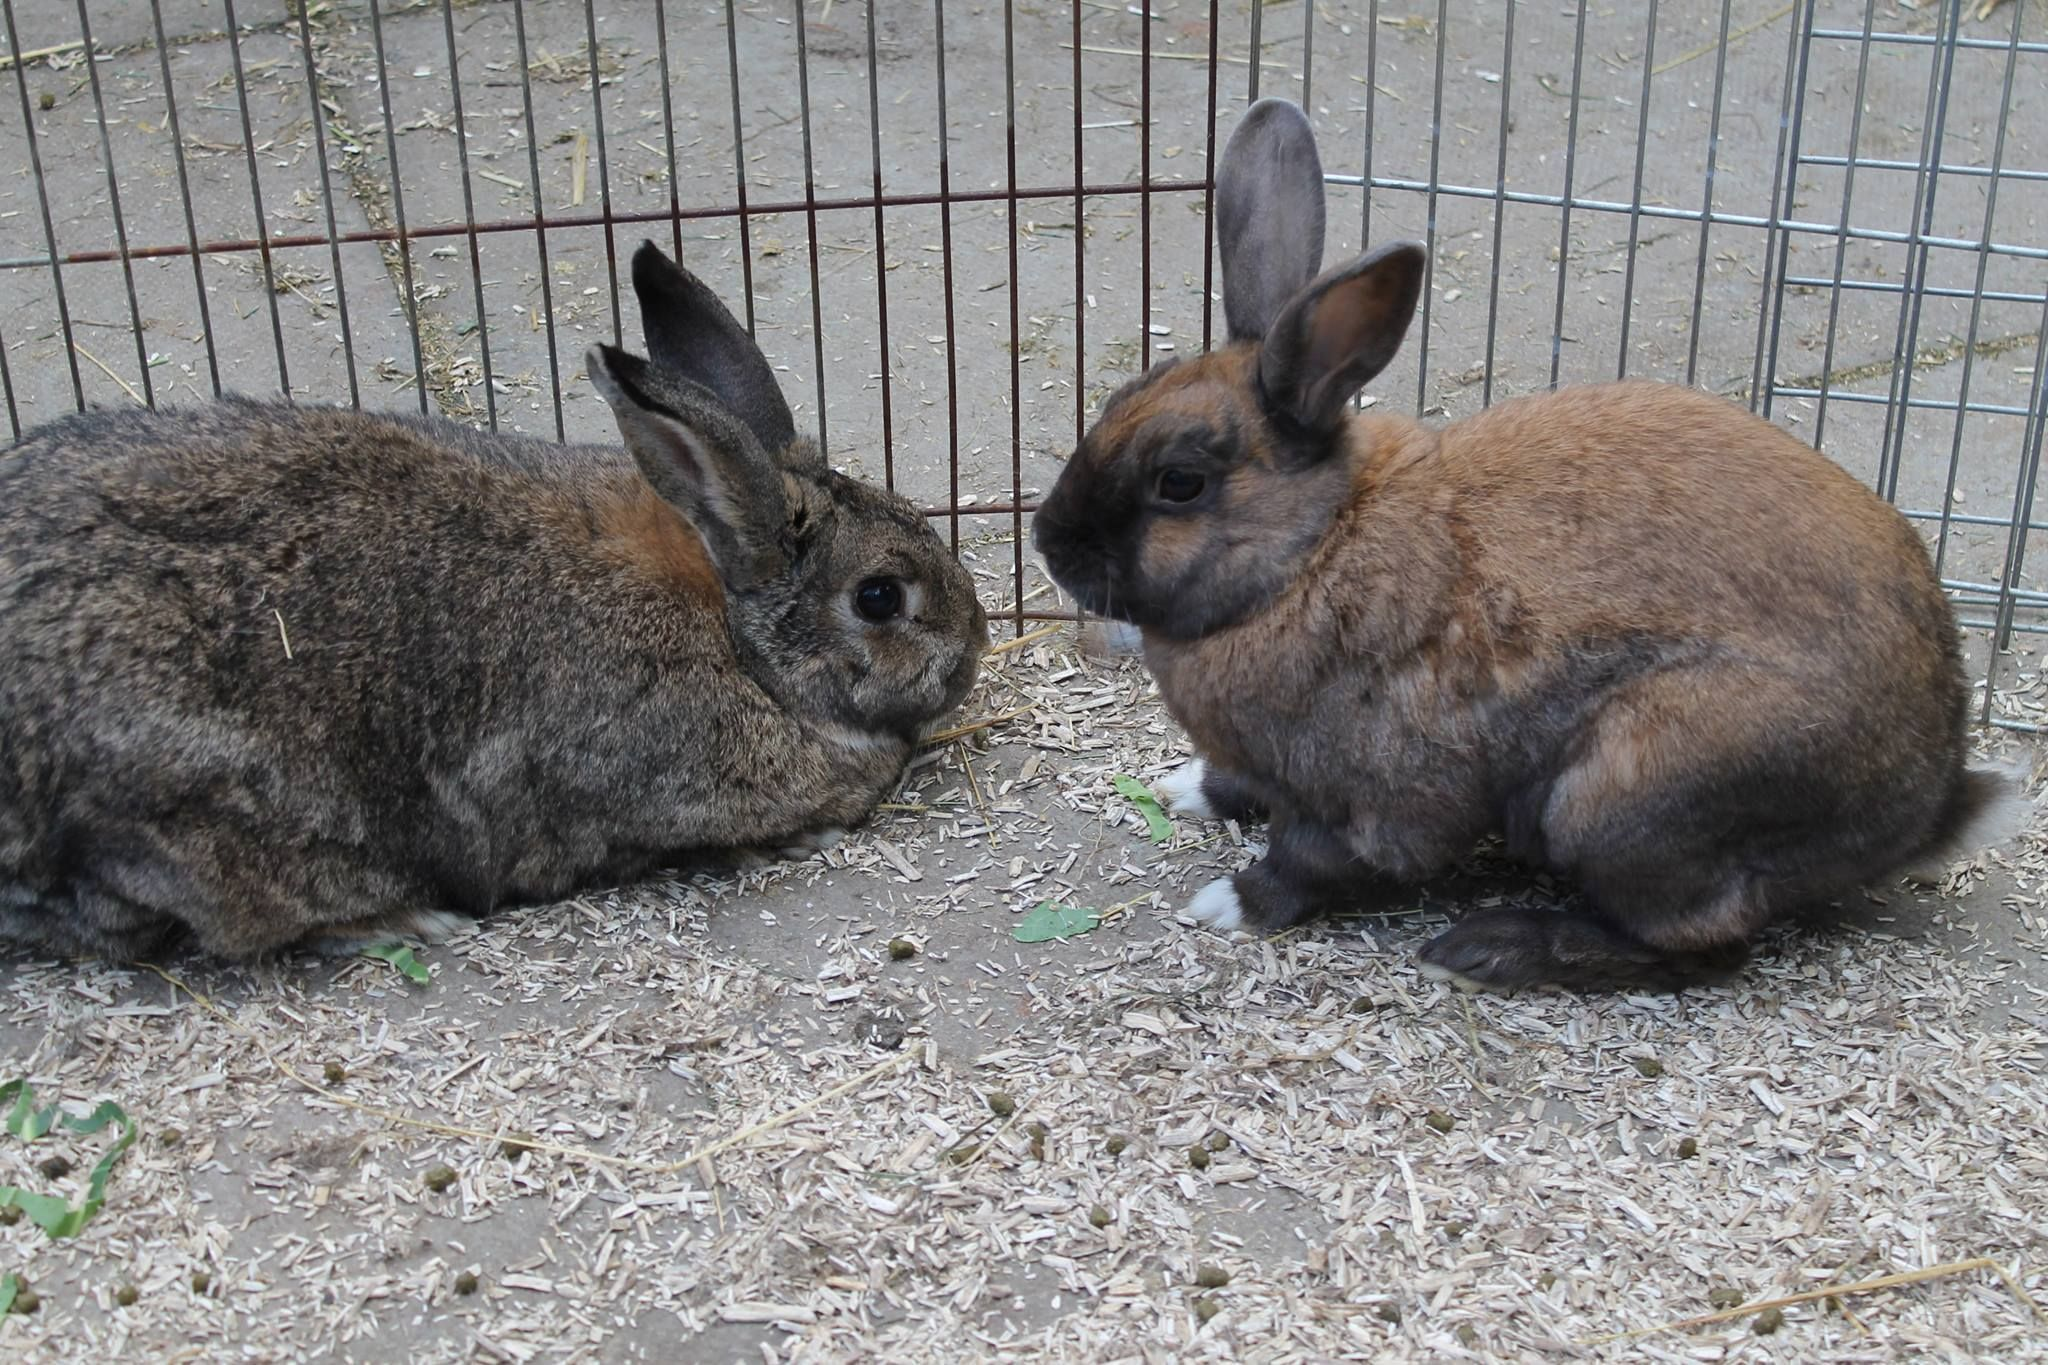 Trevor also hopped off yesterday with Hazel. Another successful rabbit re homing by Buddies Bunnies Rescue.